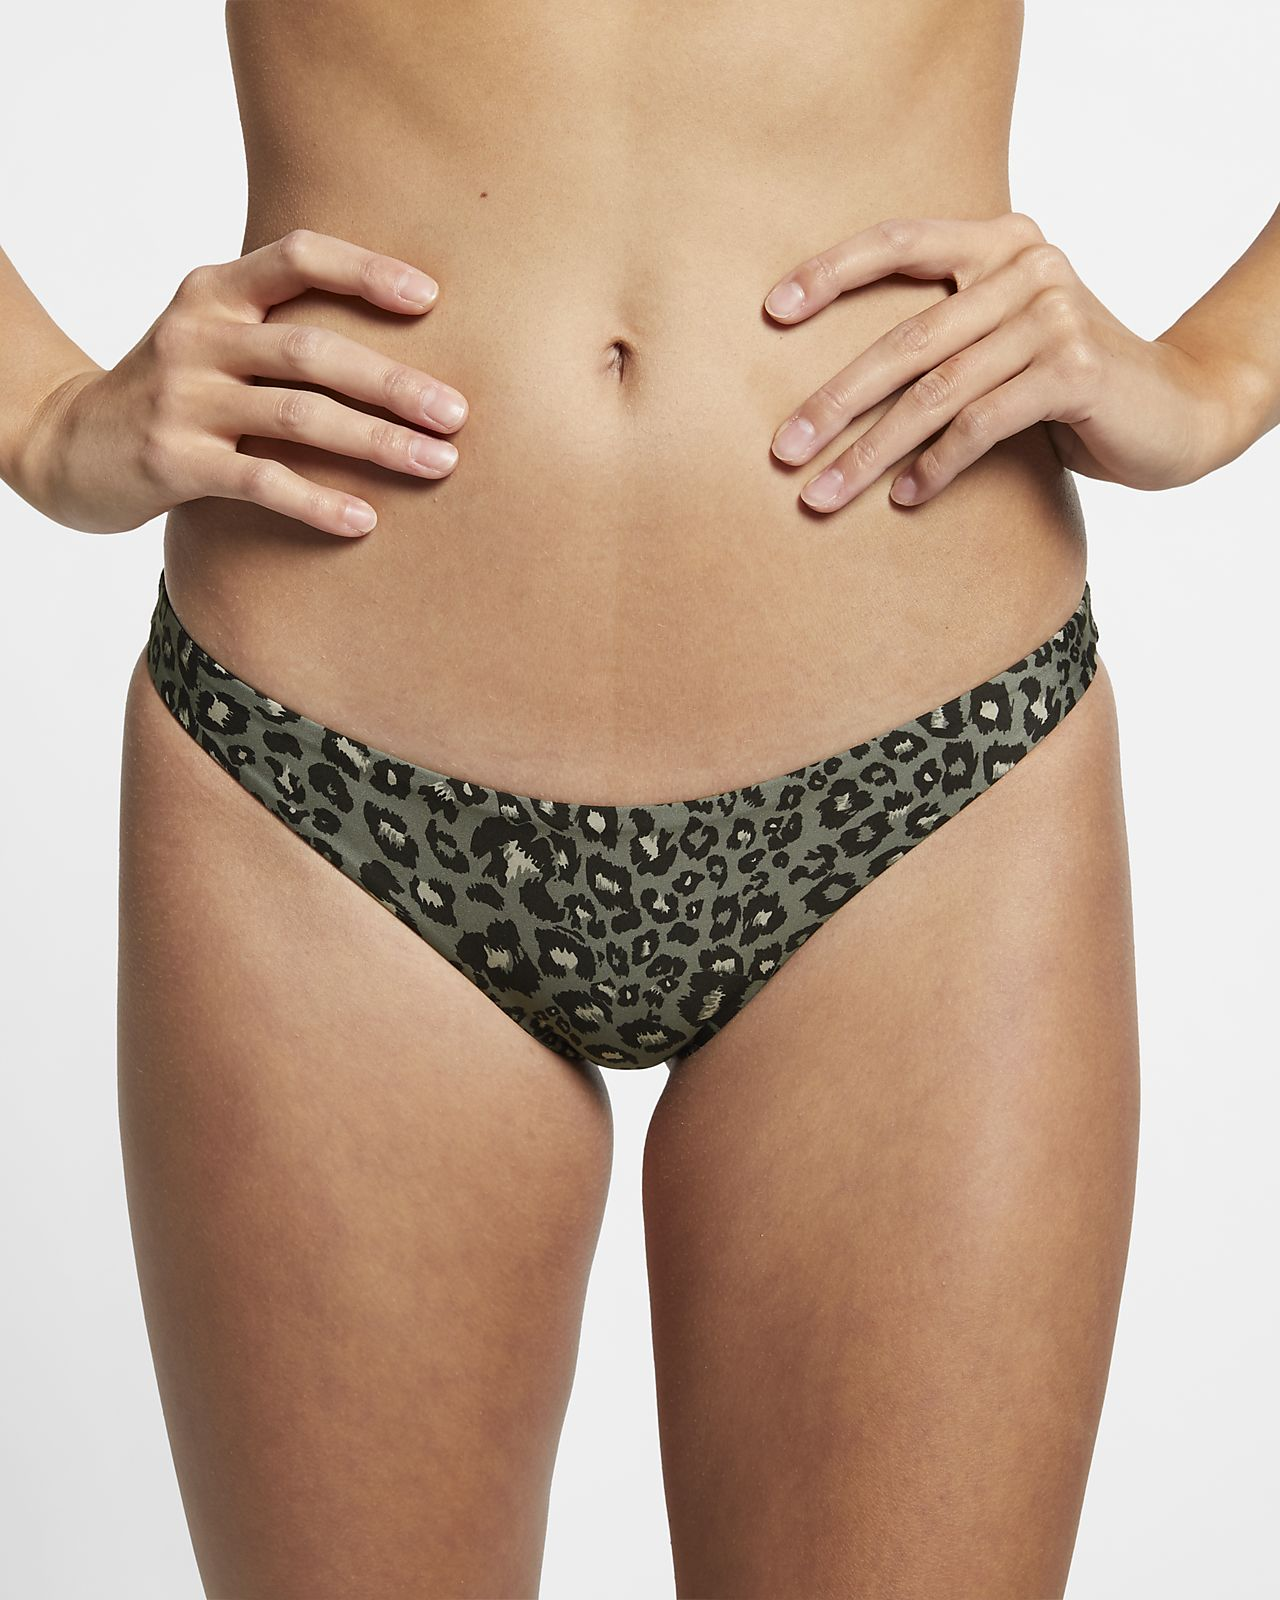 Hurley Quick Dry Women's Leopard Surf Bottoms